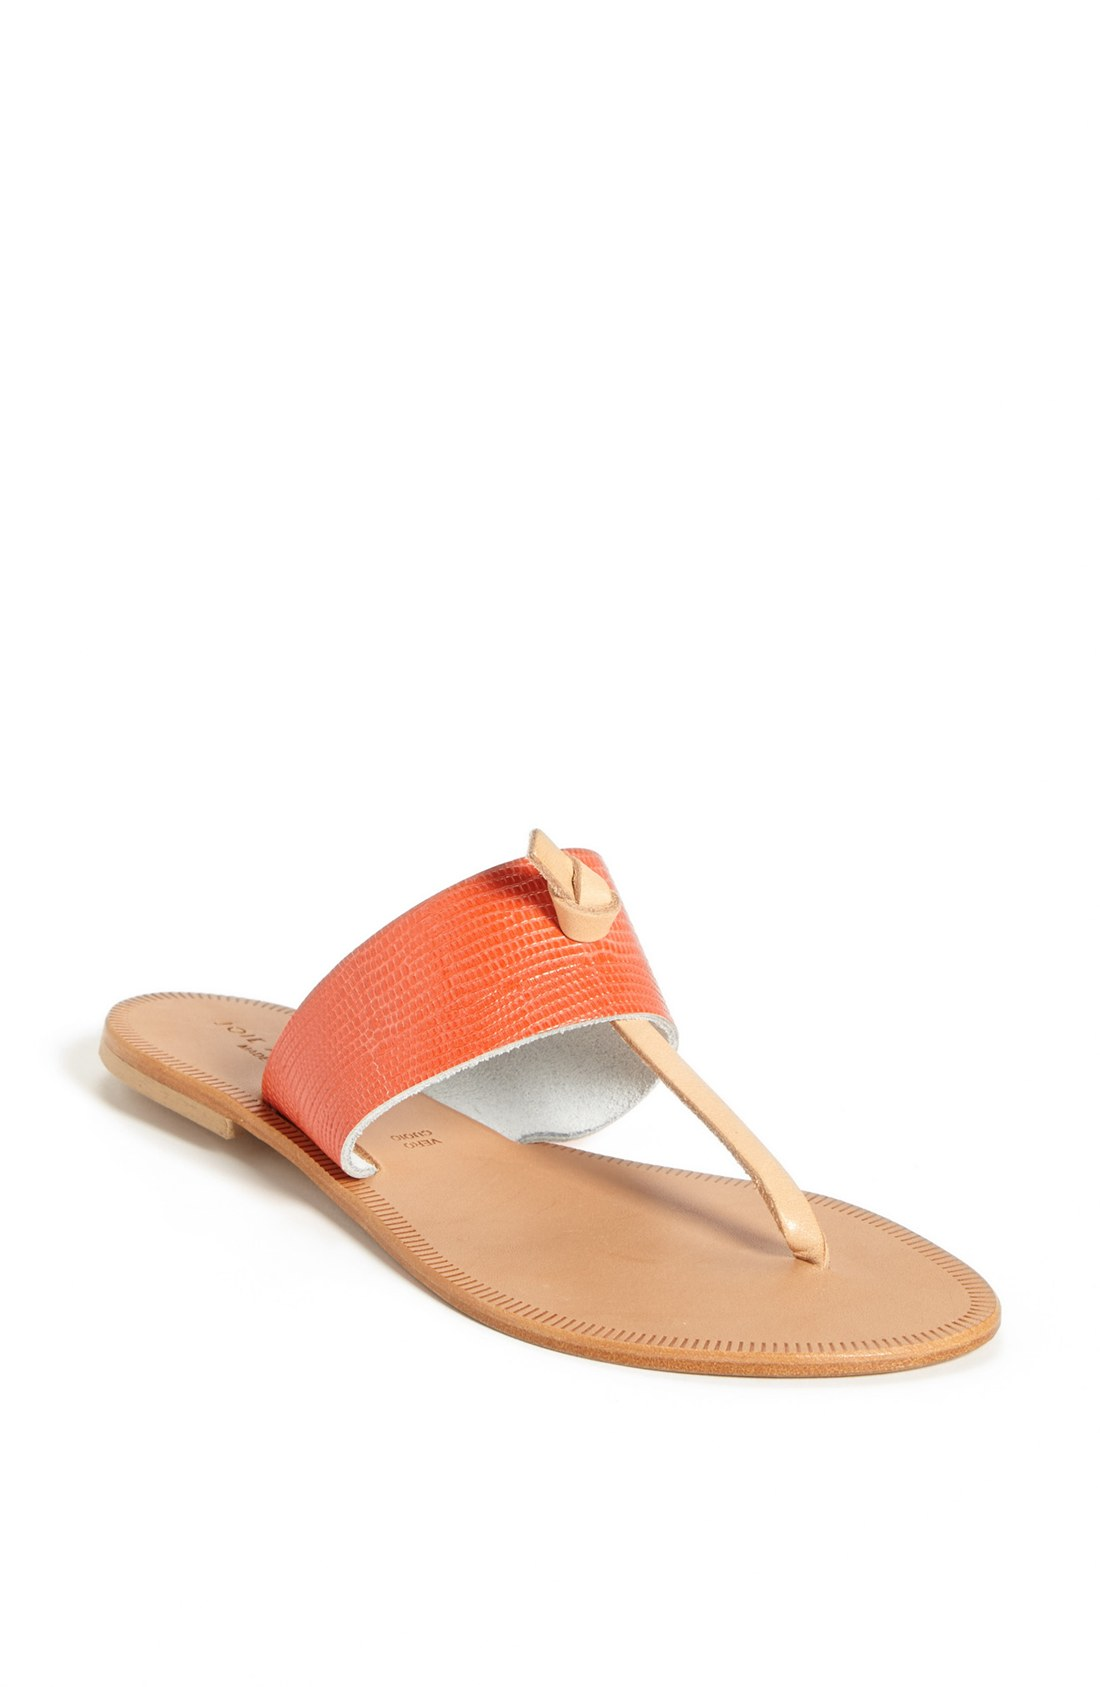 Joie A La Plage Nice Leather Thong Sandal In Orange Coral